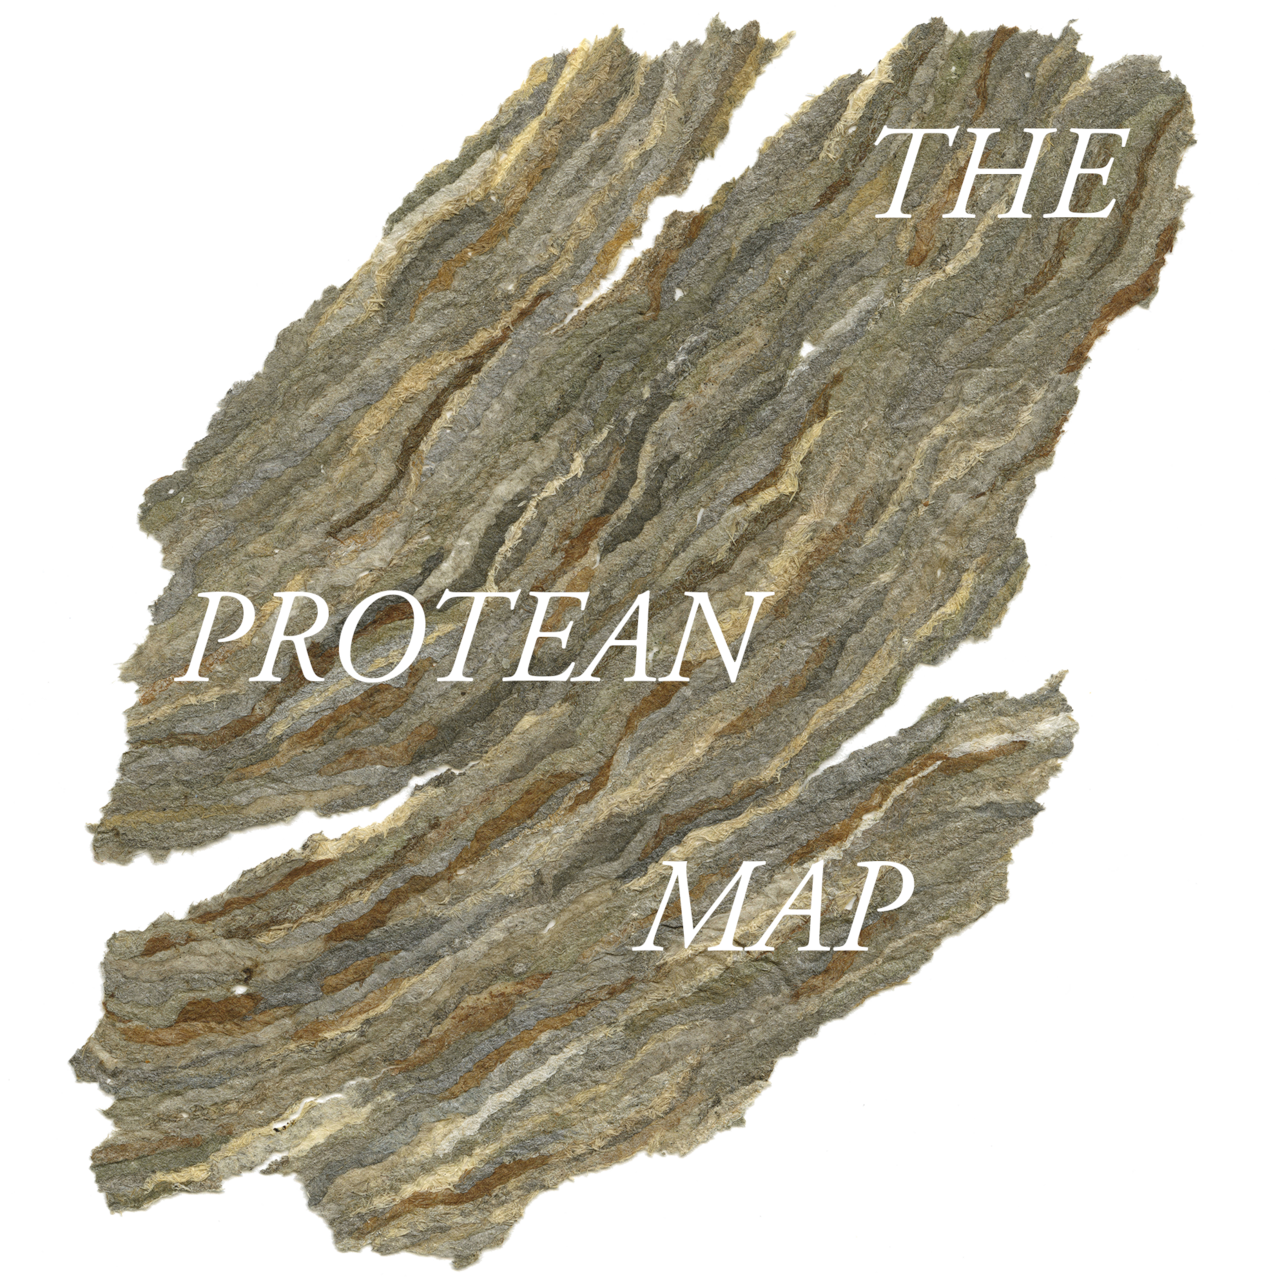 the protean map